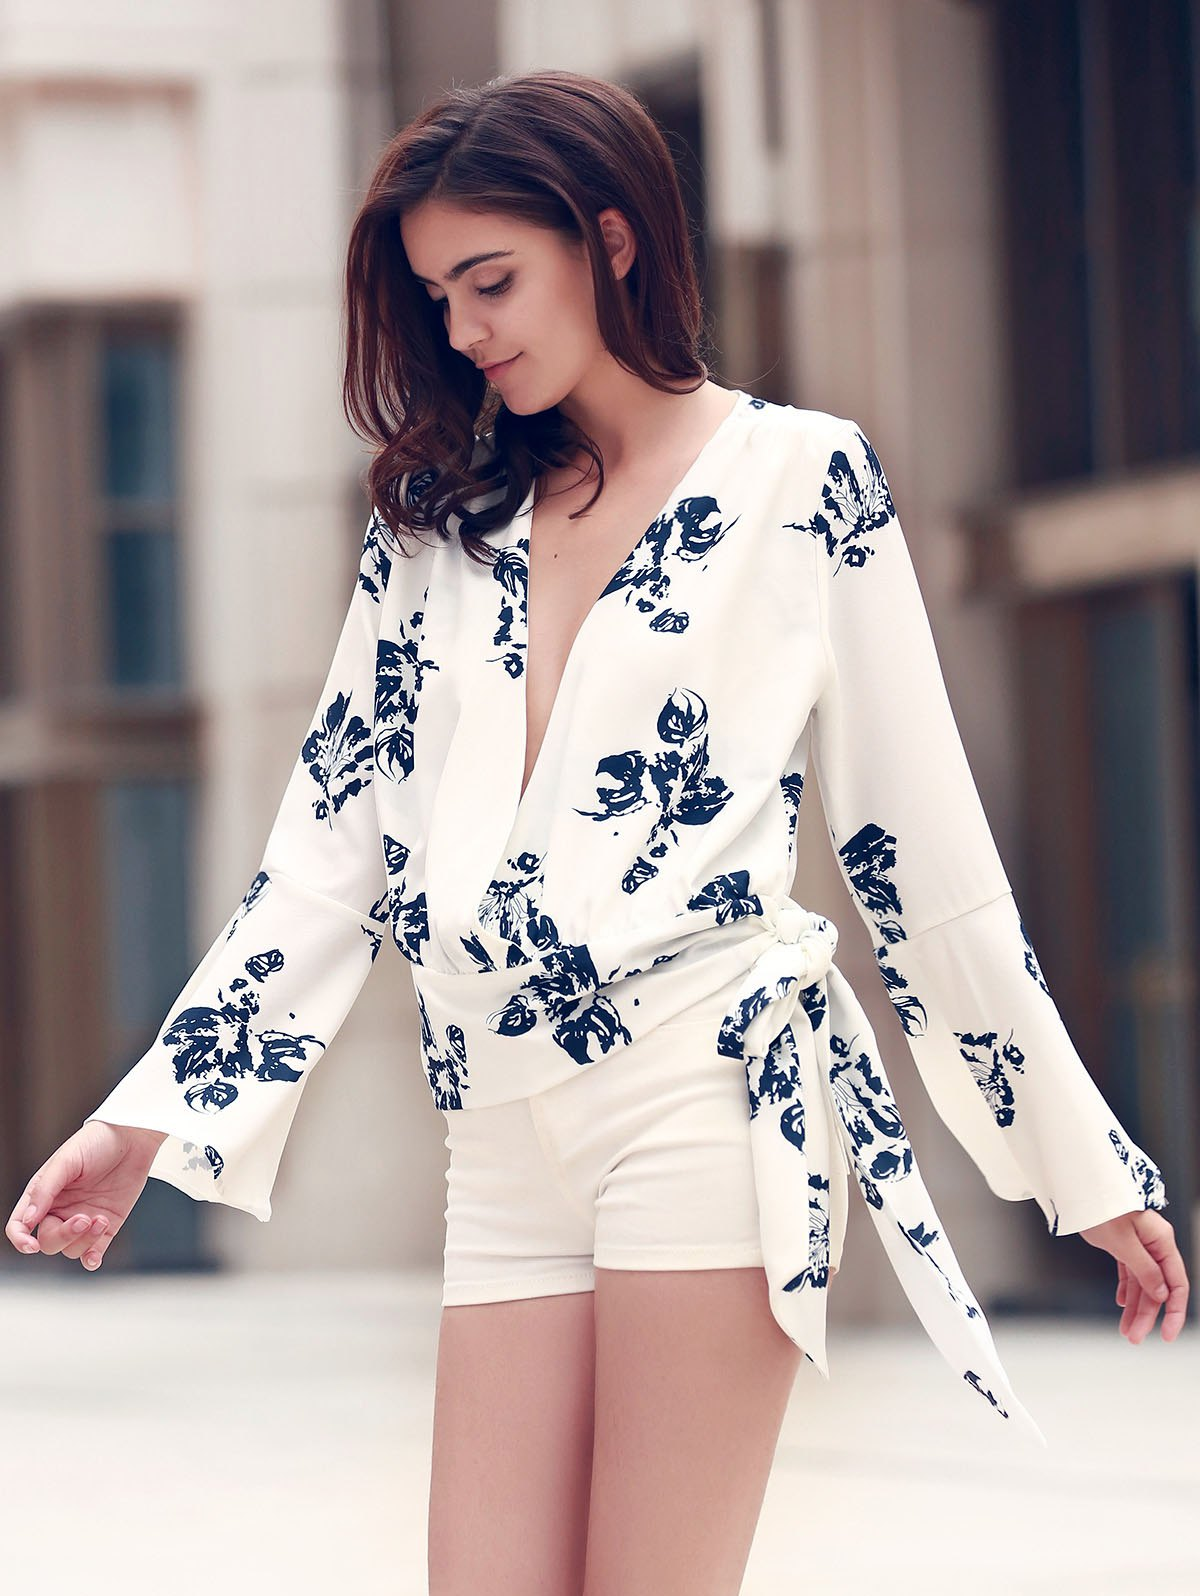 Alluring Women's Plunging Neckline Flare Sleeve Floral Print T-Shirt - S WHITE